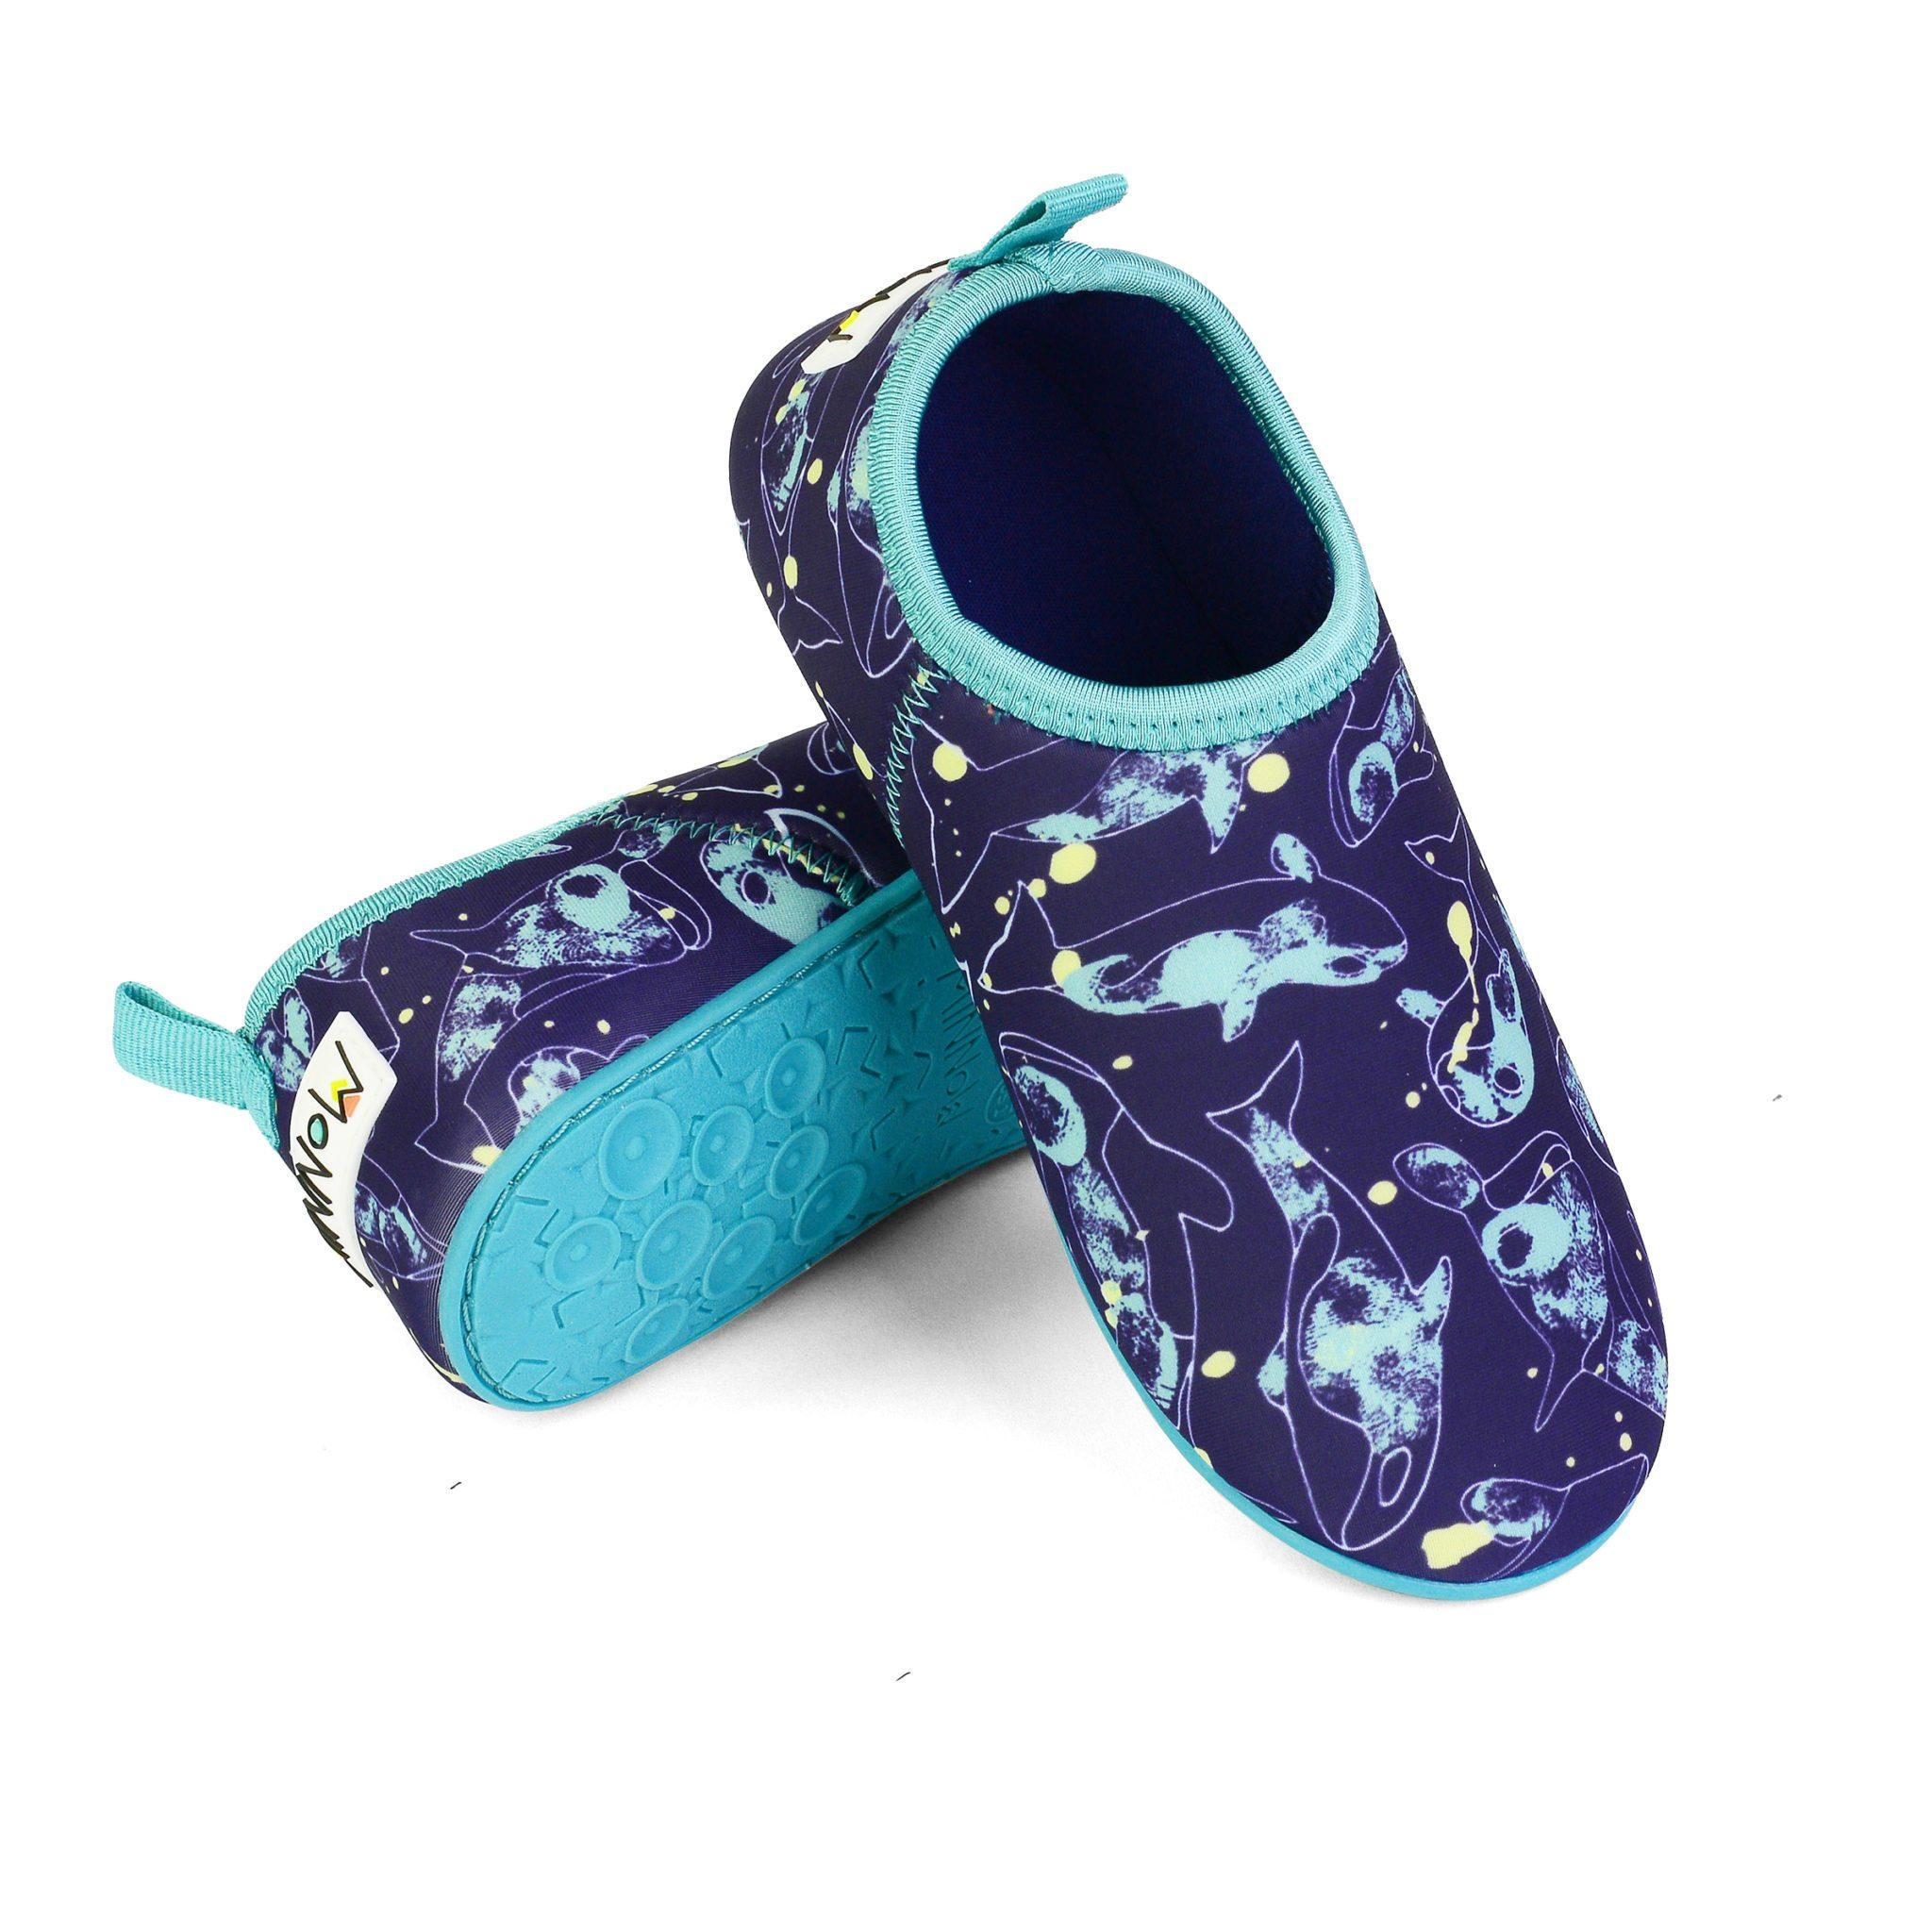 Minnow Designs Junior Beach Booties - Orcas - Kids' Shoes - Minnow Designs - Naiise